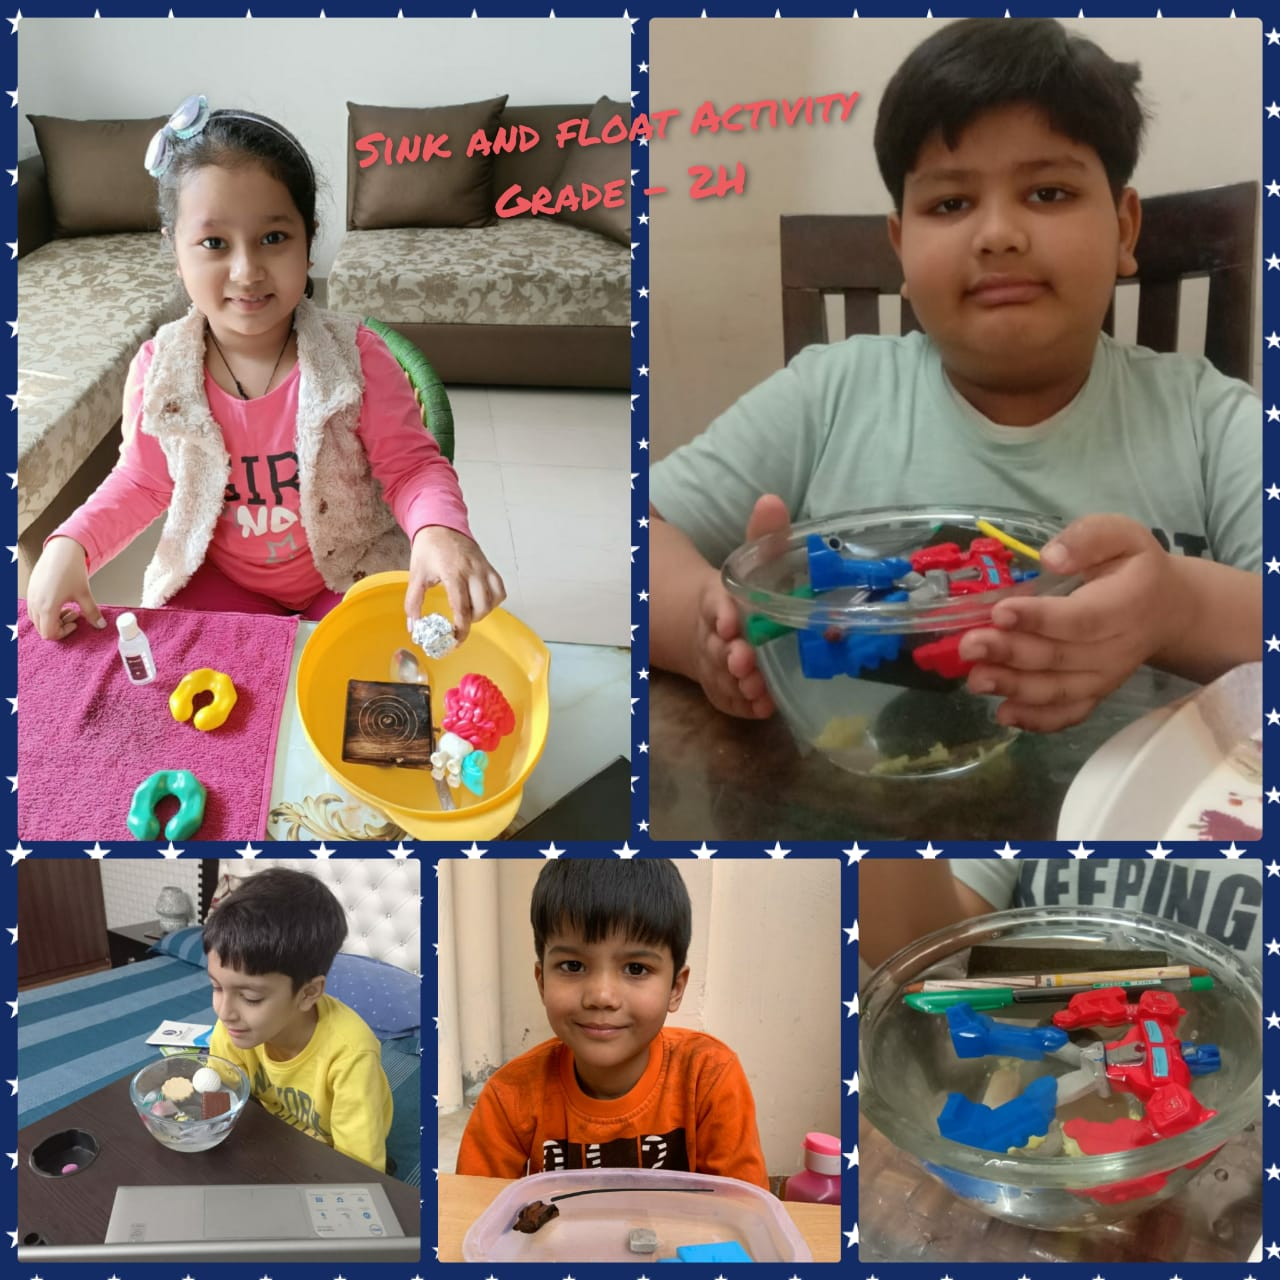 Sink and Float Activity-2021